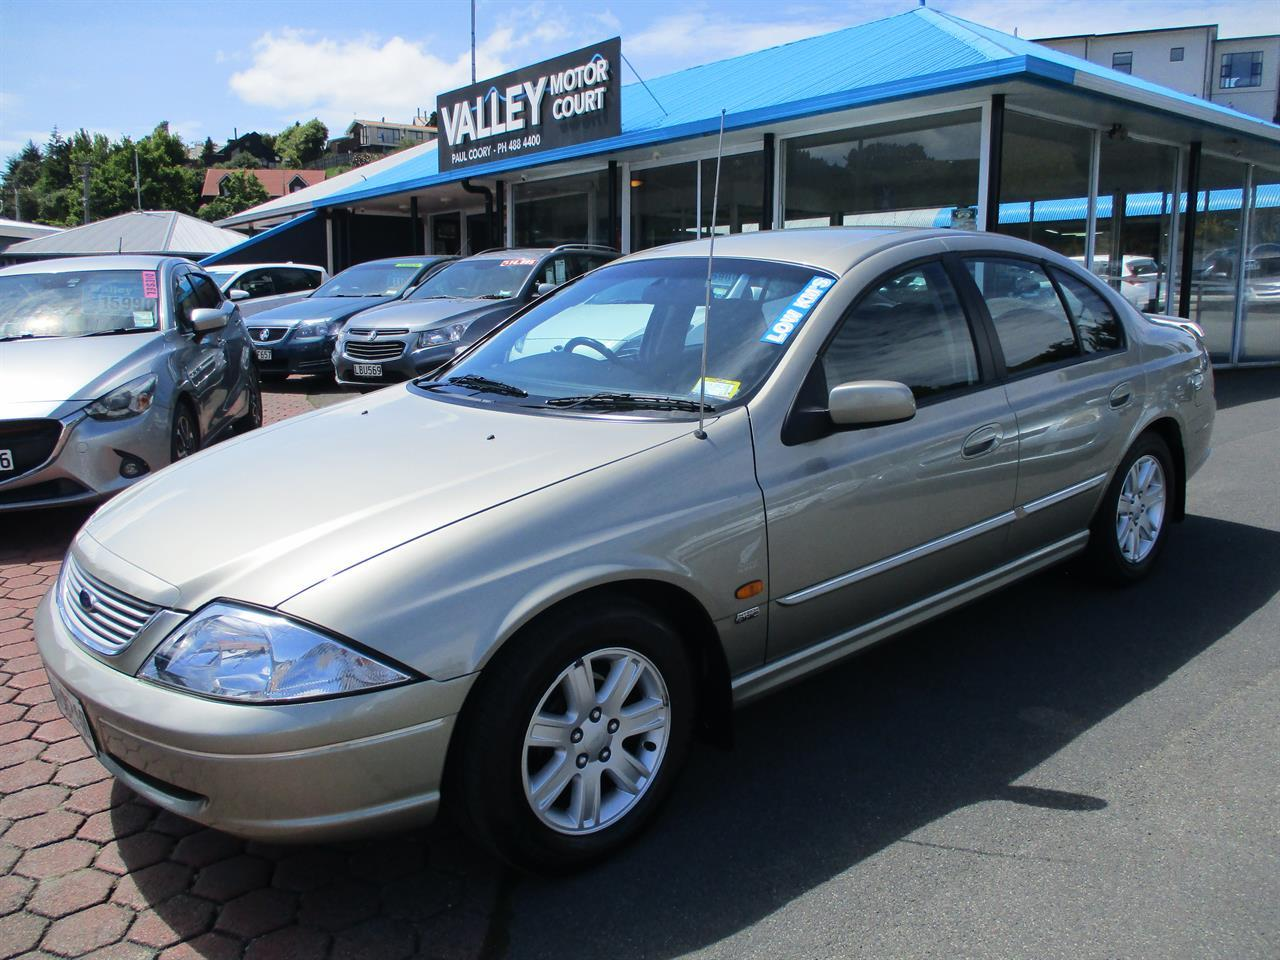 image-8, 2001 Ford Falcon AUII HERITAGE SERIES at Dunedin